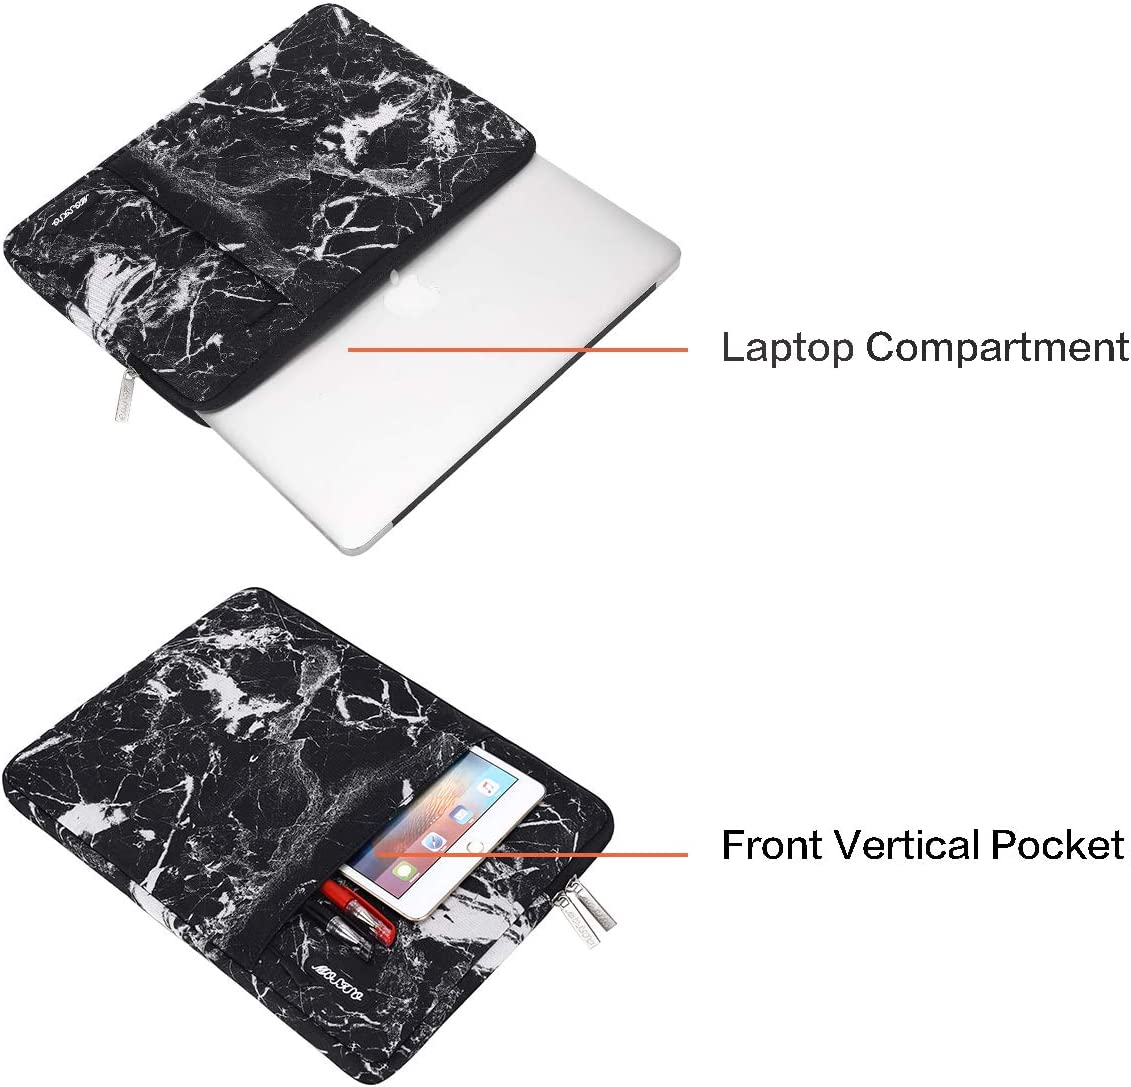 MOSISO Laptop Sleeve Bag Compatible with 15.6 inch Thinkpad Chromebook Notebook Tablet Space Gray Vertical Style Water Repellent Polyester Protective Case Cover with Accessory Pocket